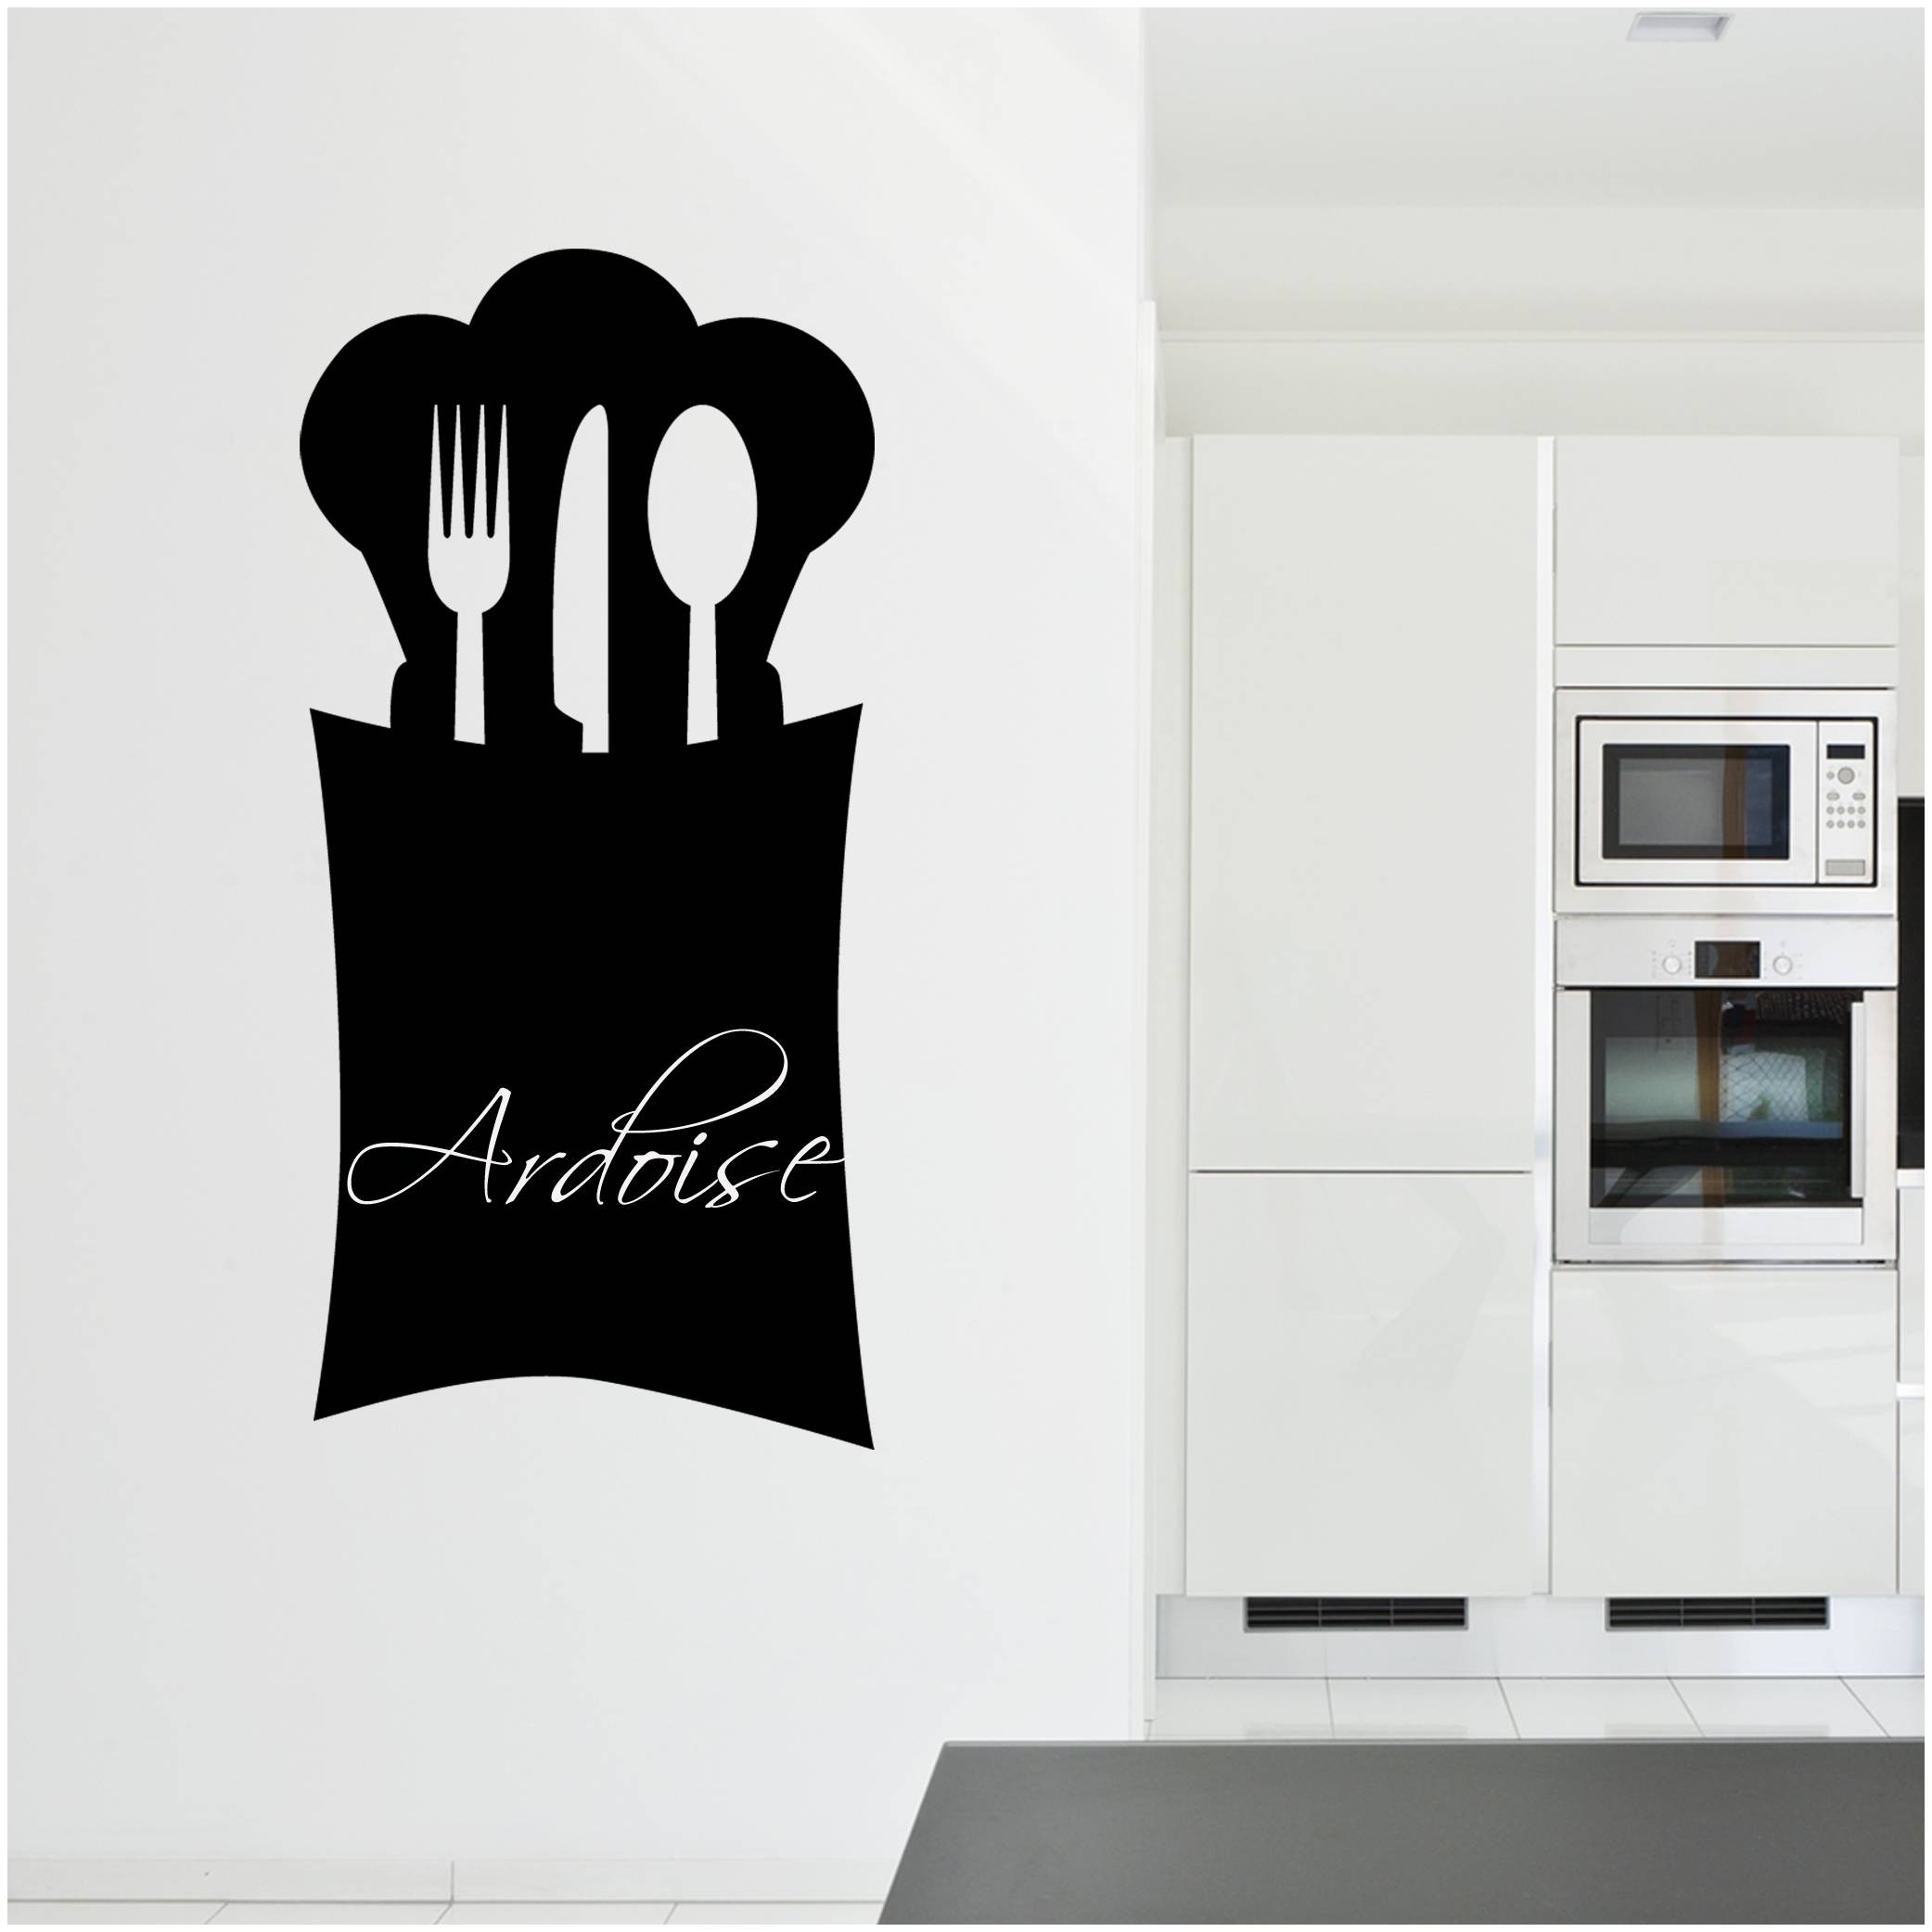 stickers ardoise cuisine couverts des prix 50 moins cher qu 39 en magasin. Black Bedroom Furniture Sets. Home Design Ideas